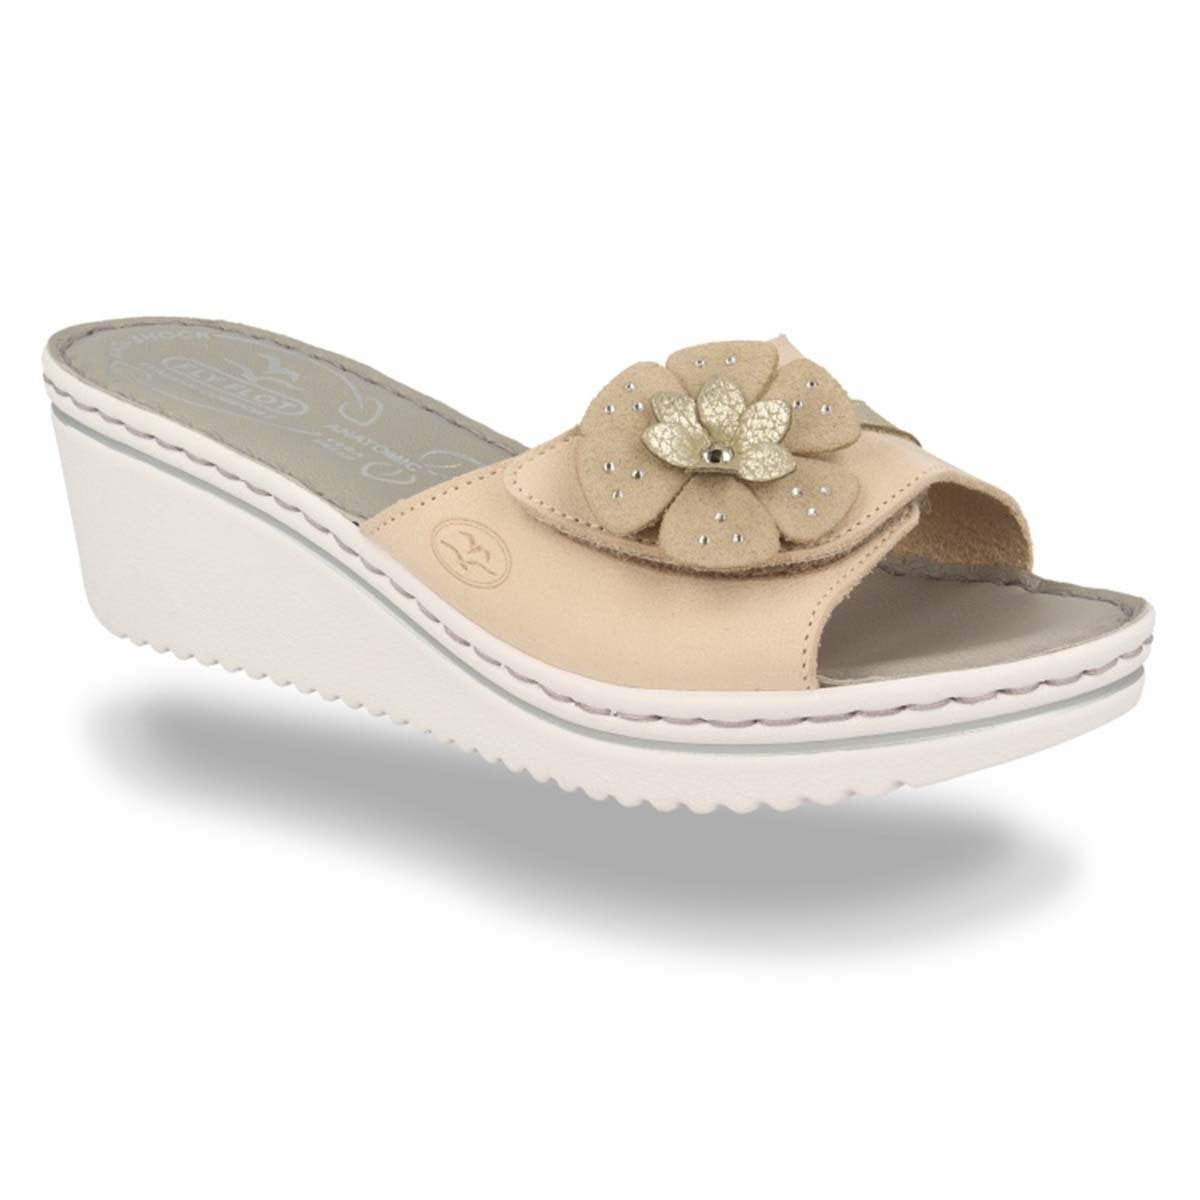 See photos Leather Woman Slipper Beige (41D433G)